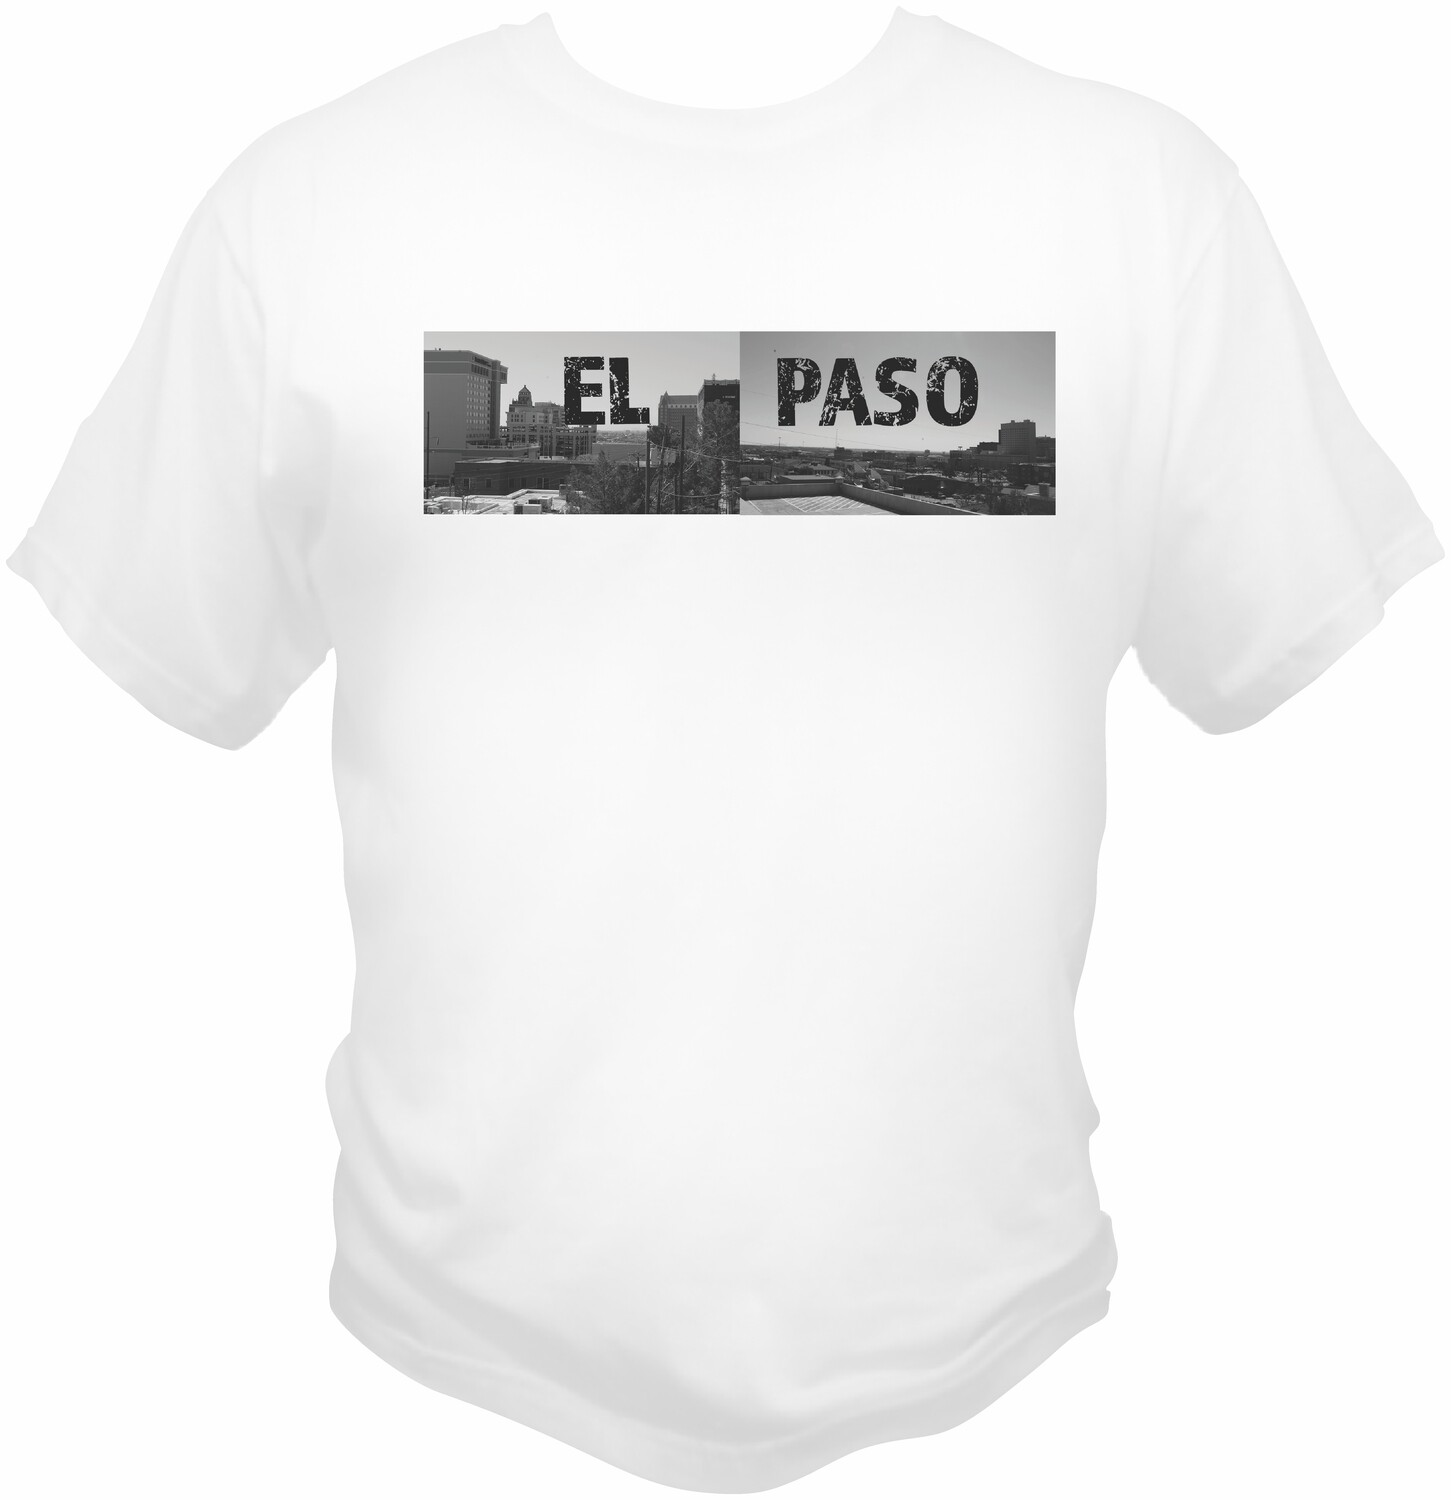 El Paso City short sleeve